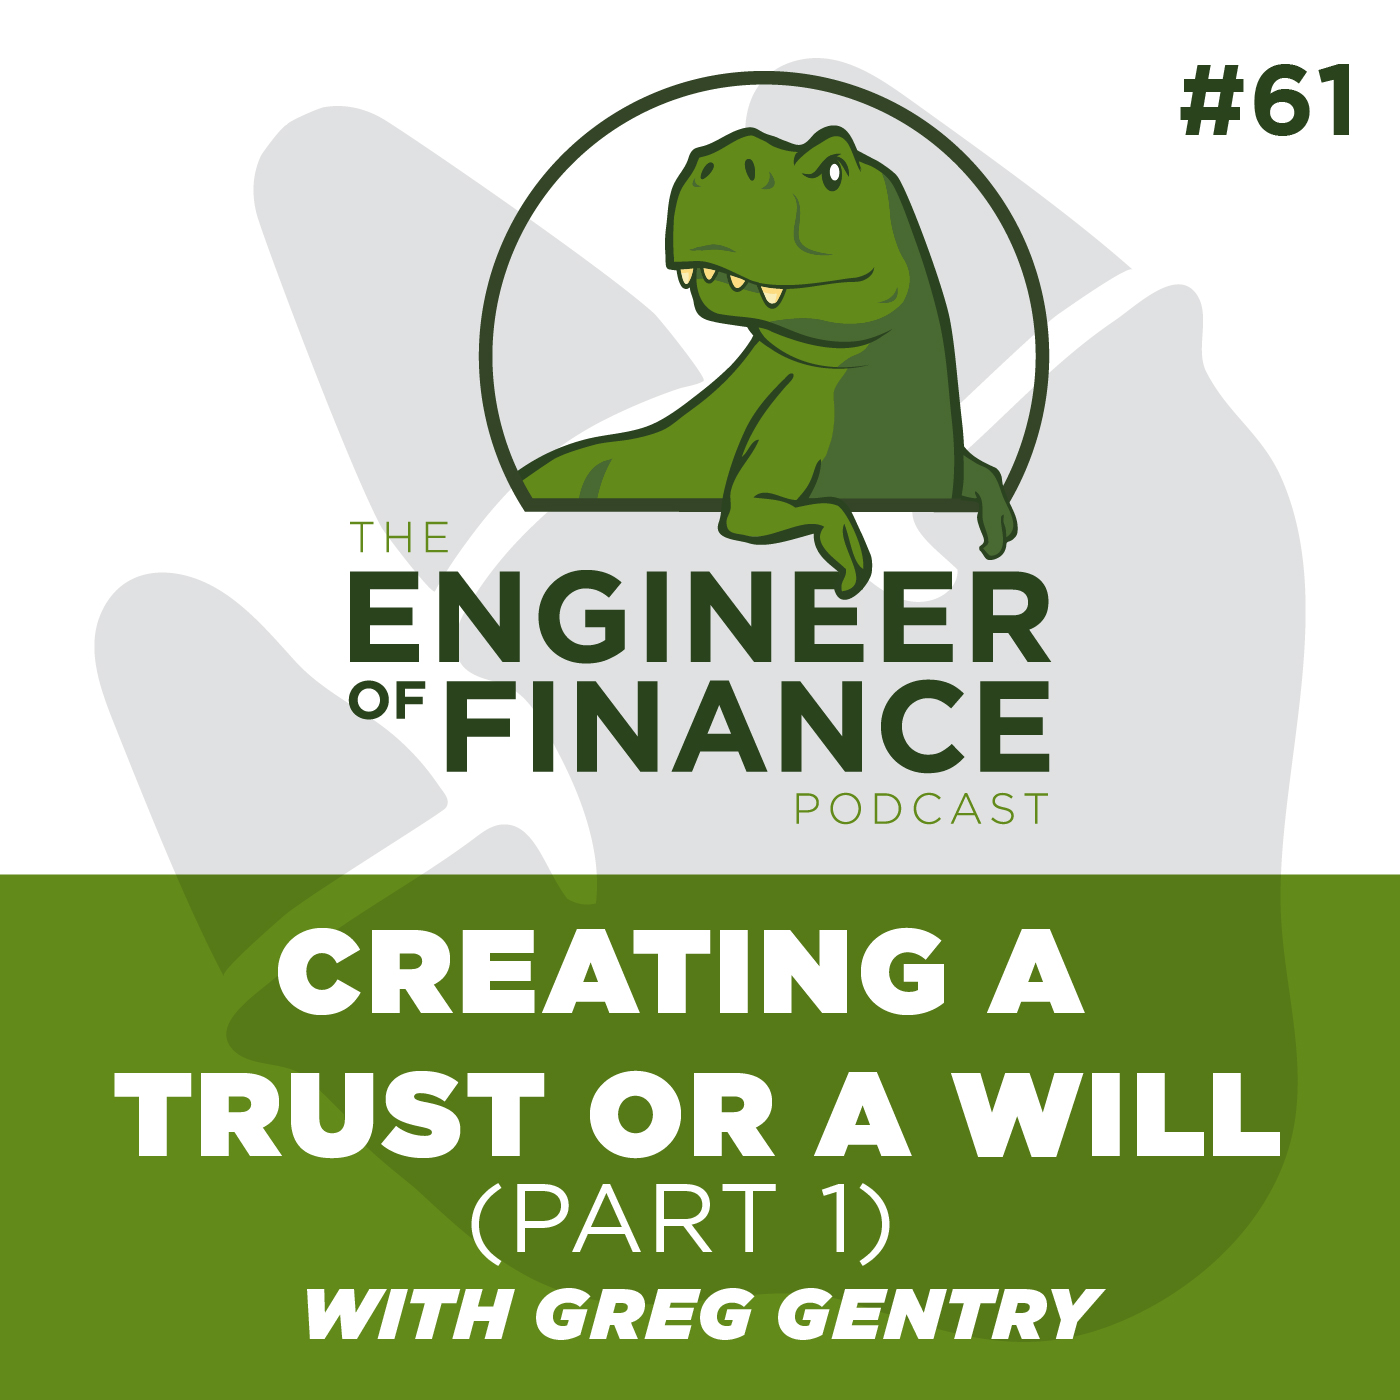 Creating a Trust or a Will (Part 1) With Greg Gentry – Episode 61